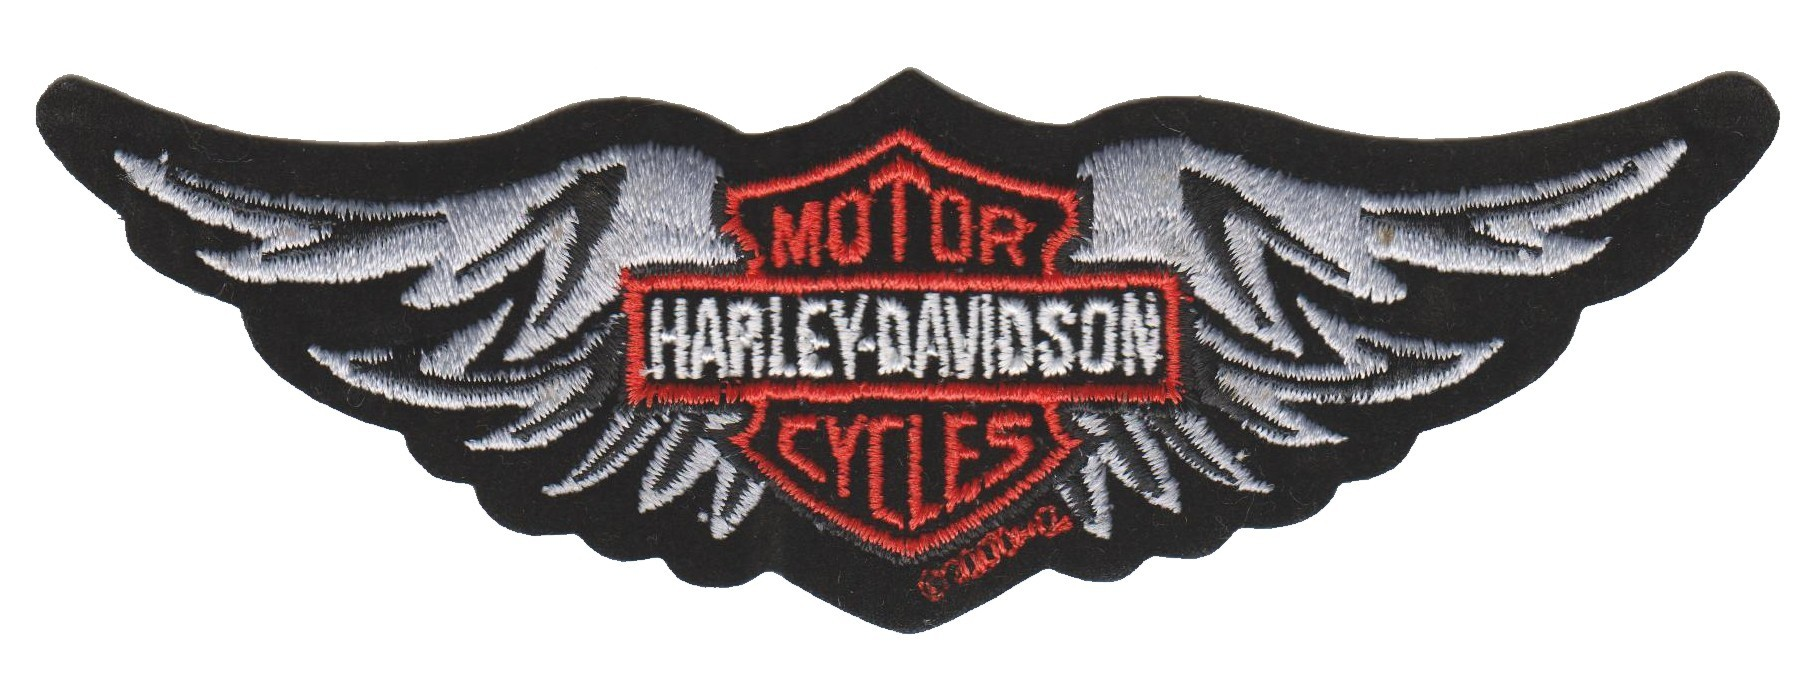 Harley-Davidson ® Logo / Wings Harley ® PatchAvailable in 2 SizesFREE SHIPPING - Product Image